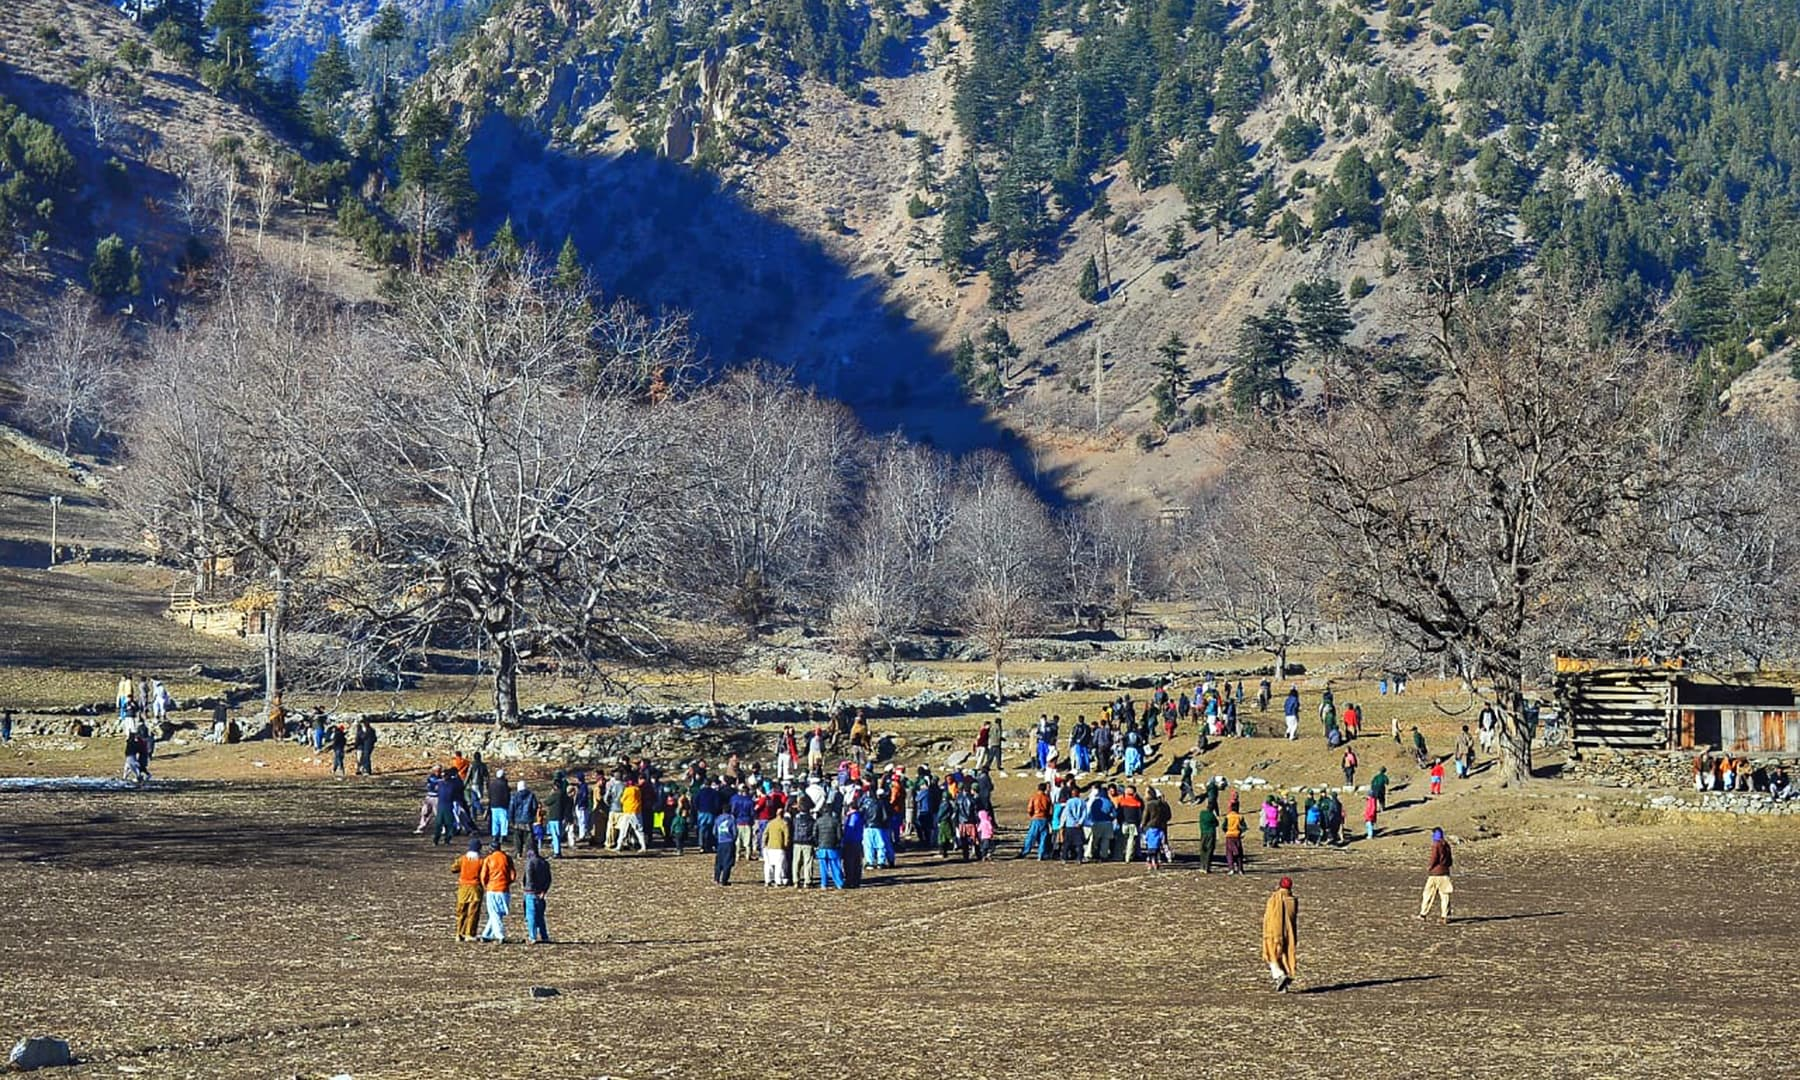 A view of the Kalasha valley where tourists are seen gathering for the day's festivities.